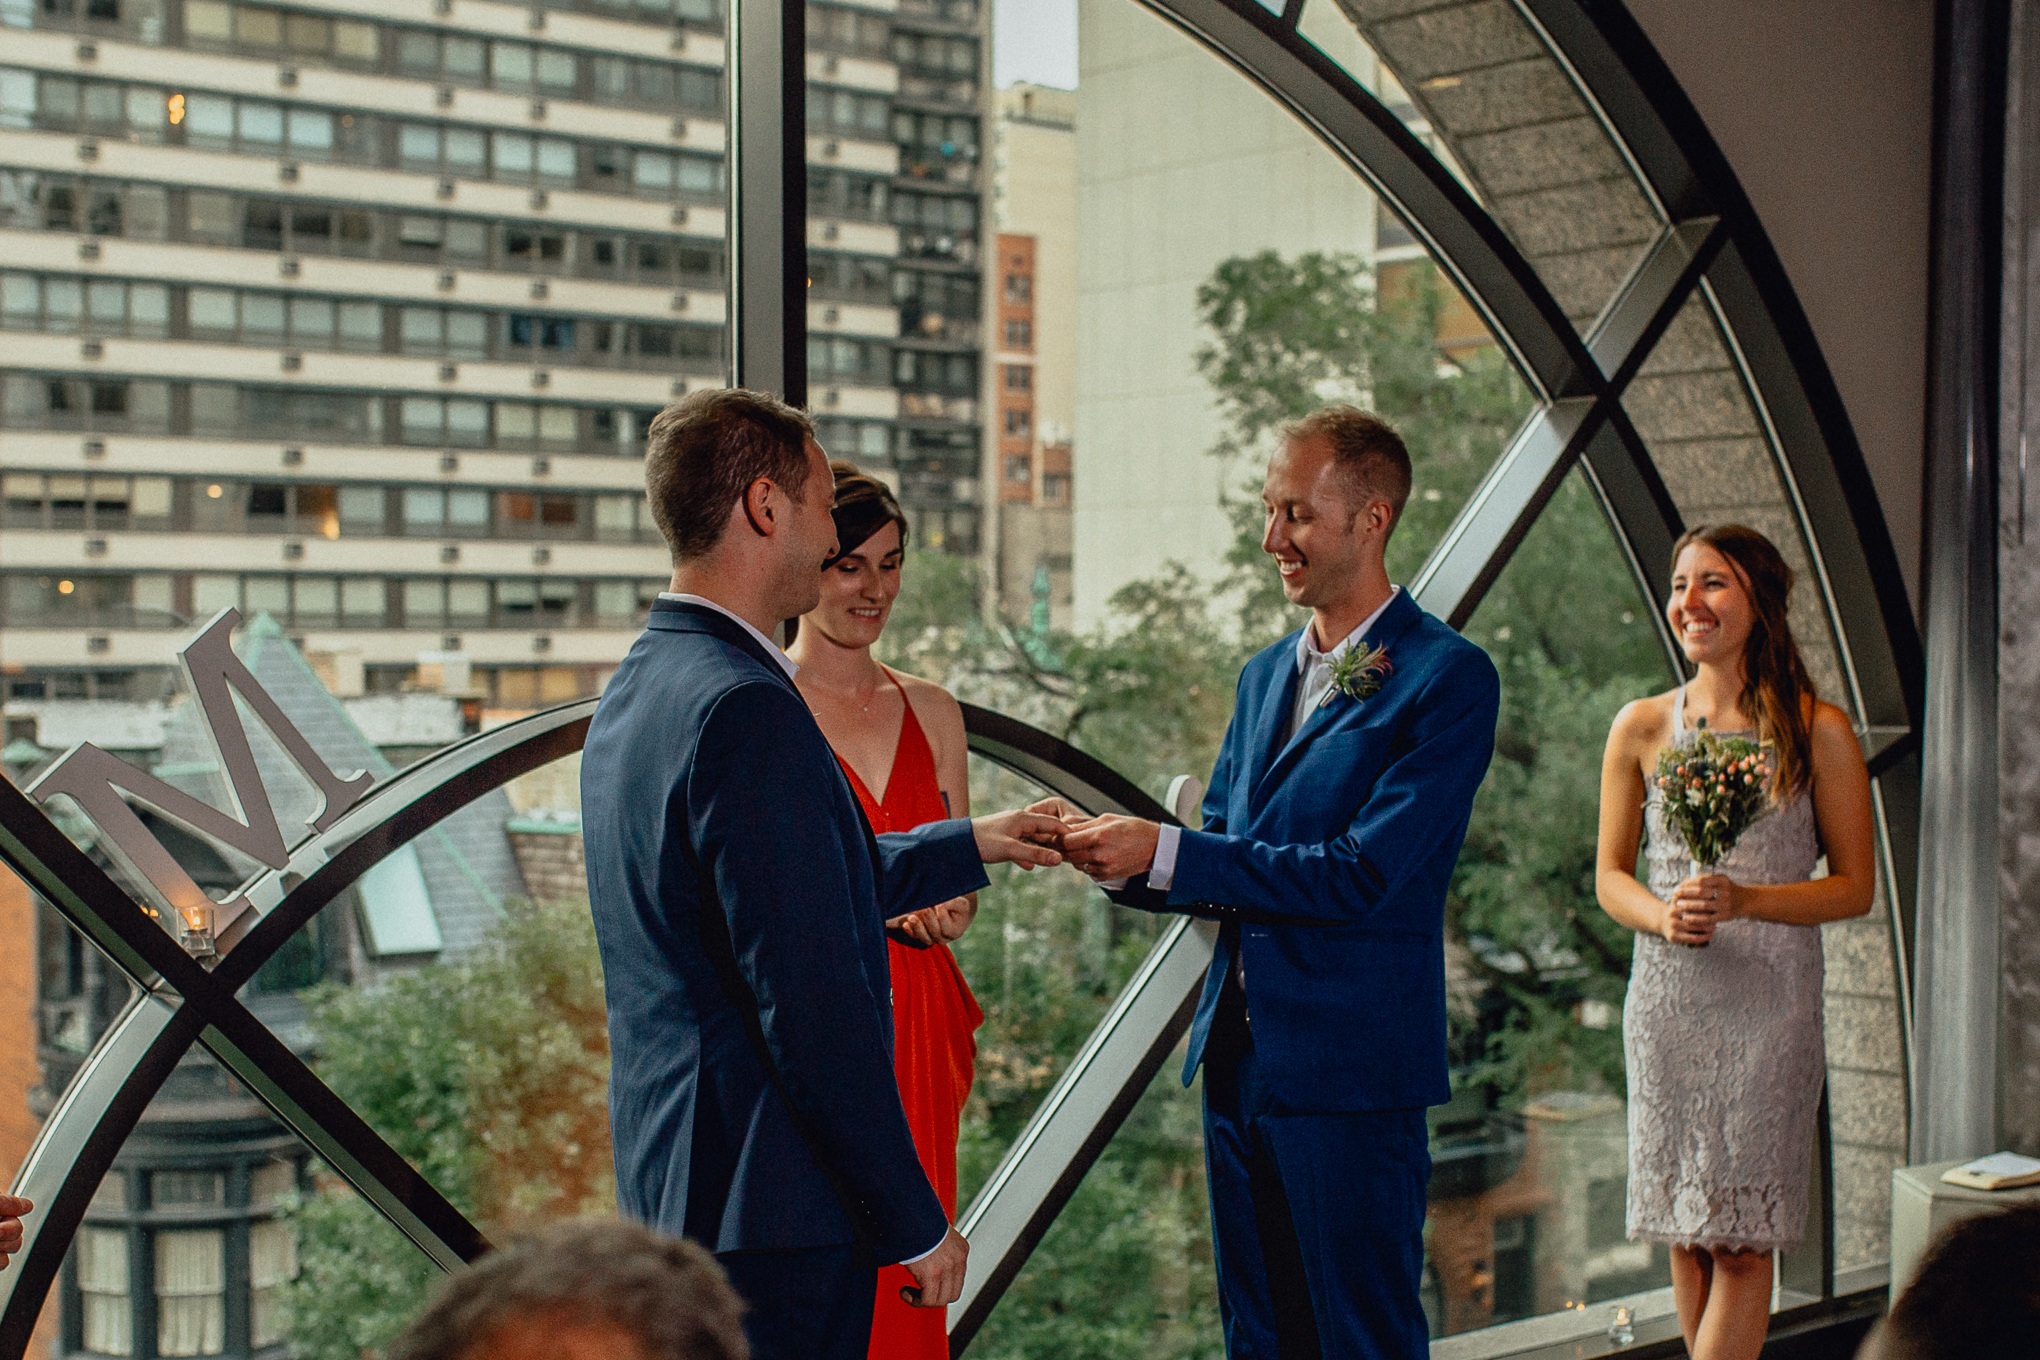 thompson-chicago-hotel-wedding-ceremony-exchanging-rings.jpg